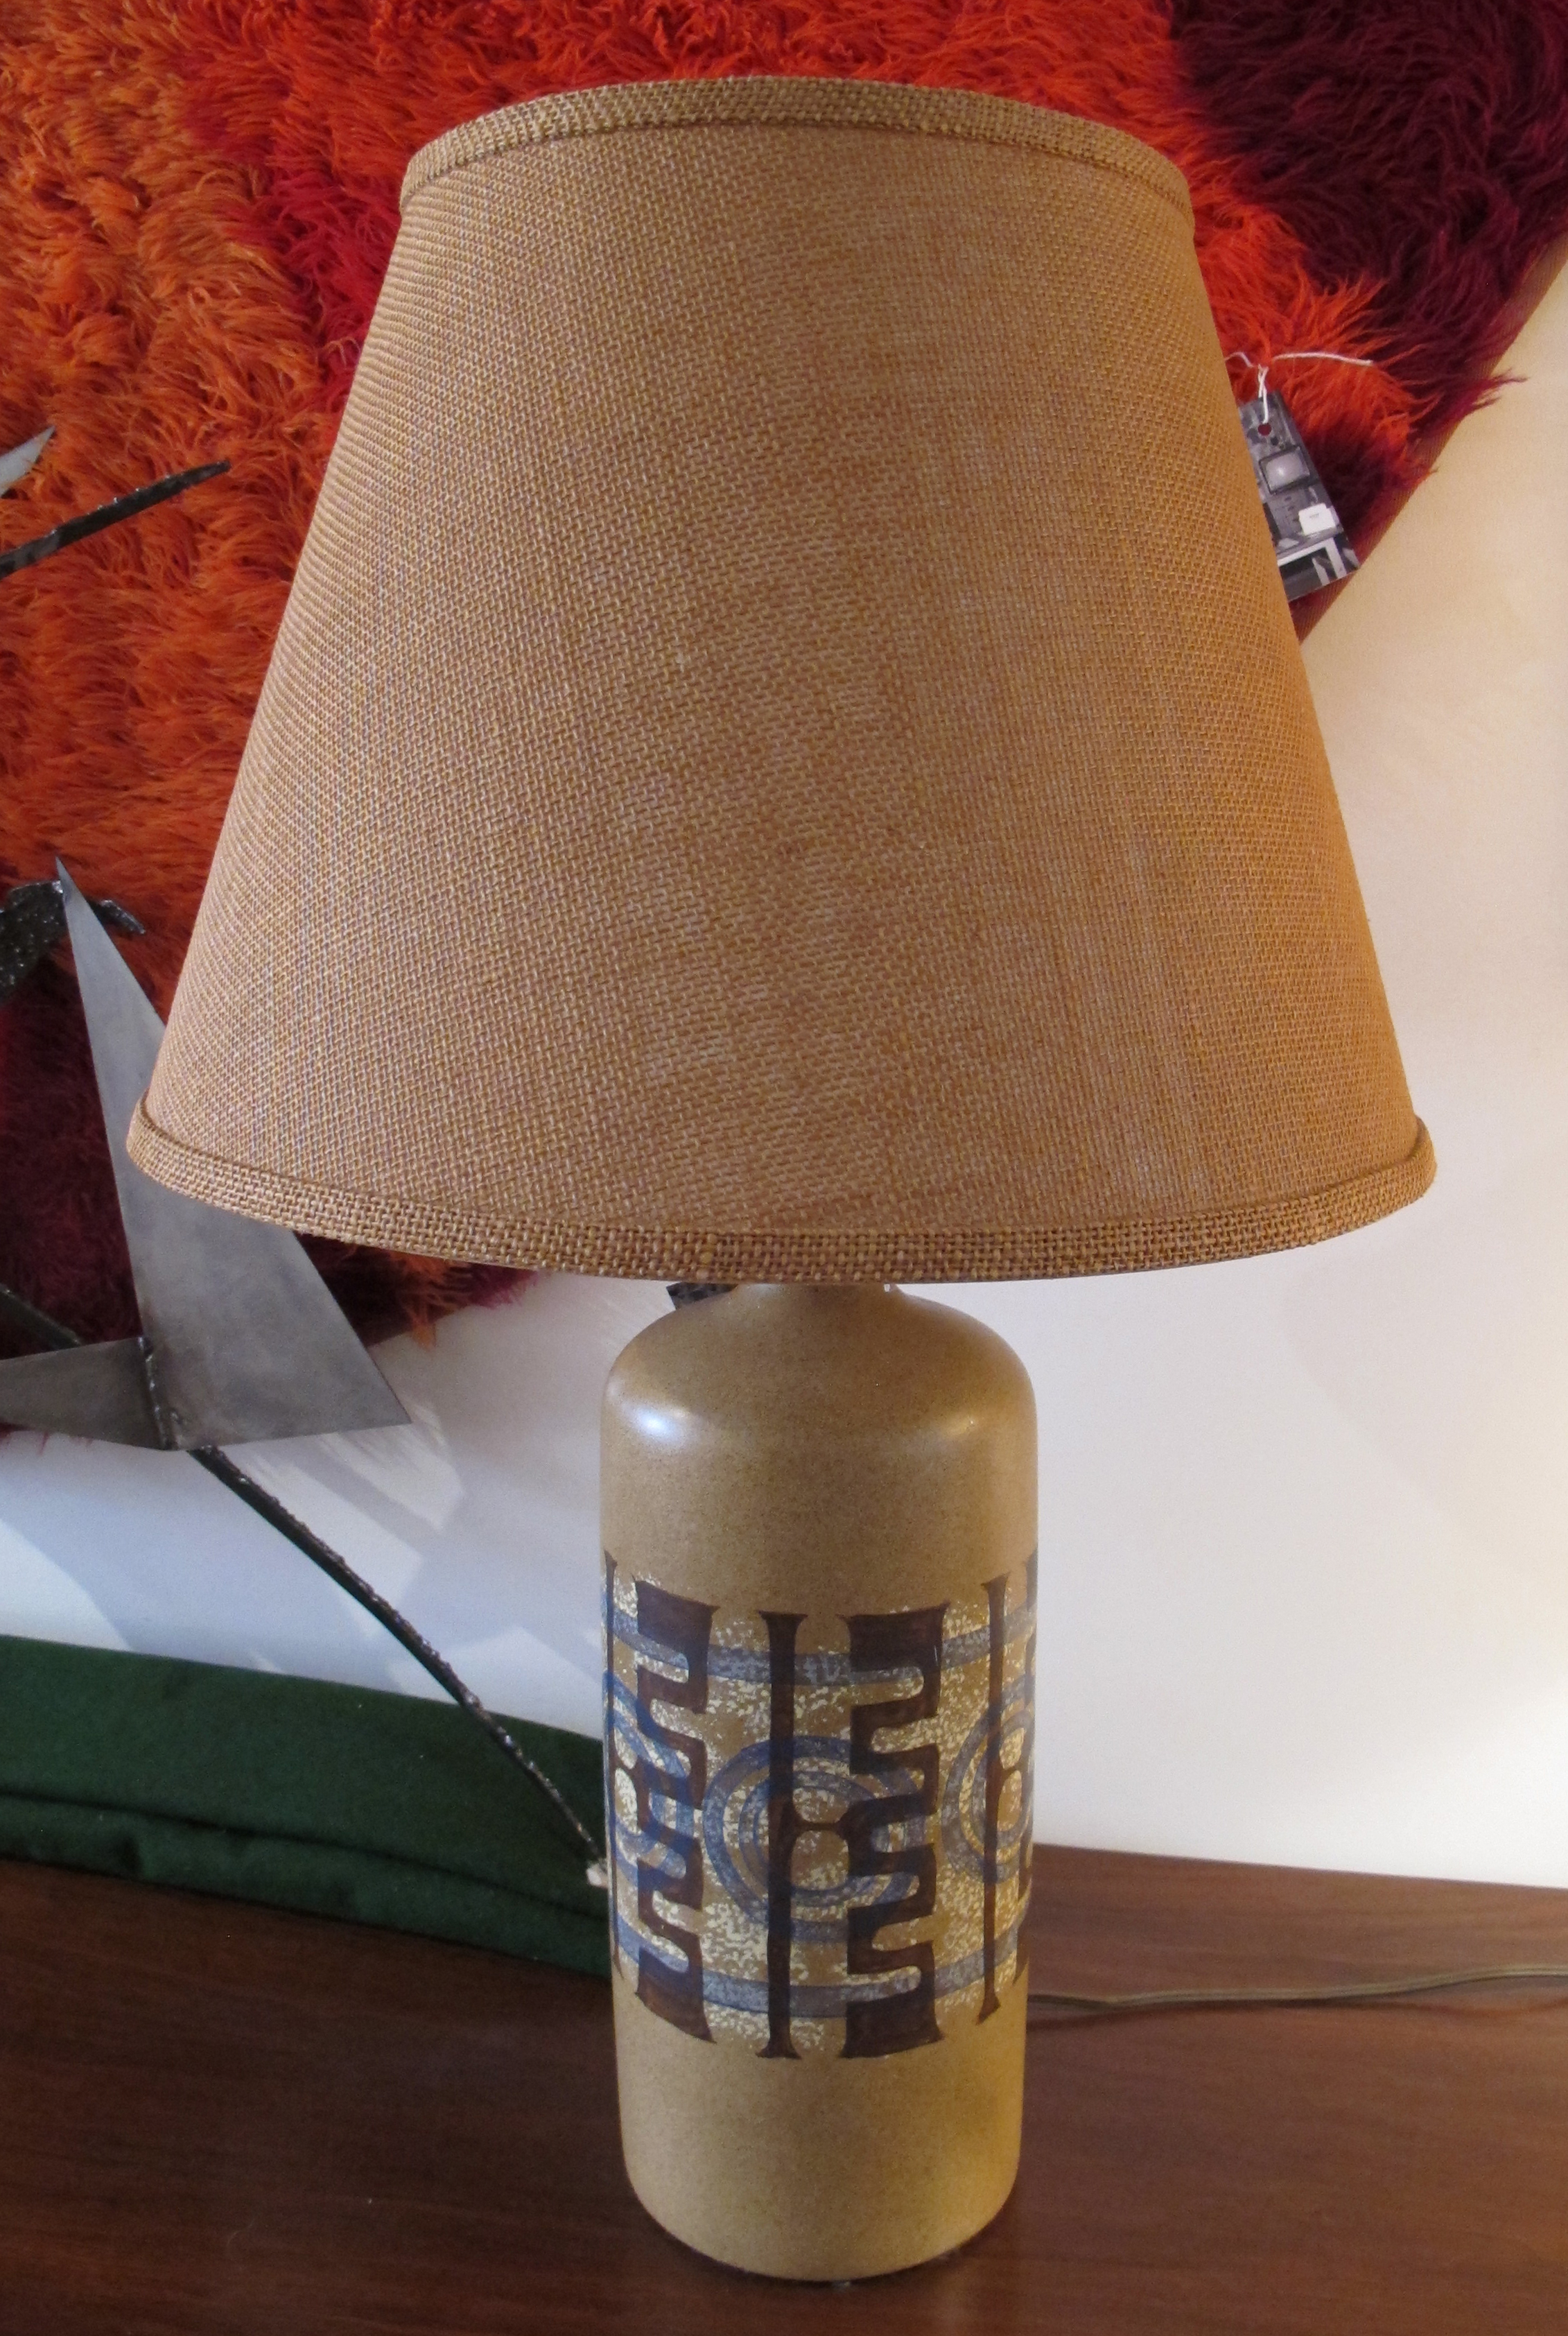 DANISH MODERN STYLE CYLINDRICAL LAMP WITH BURLAP SHADE